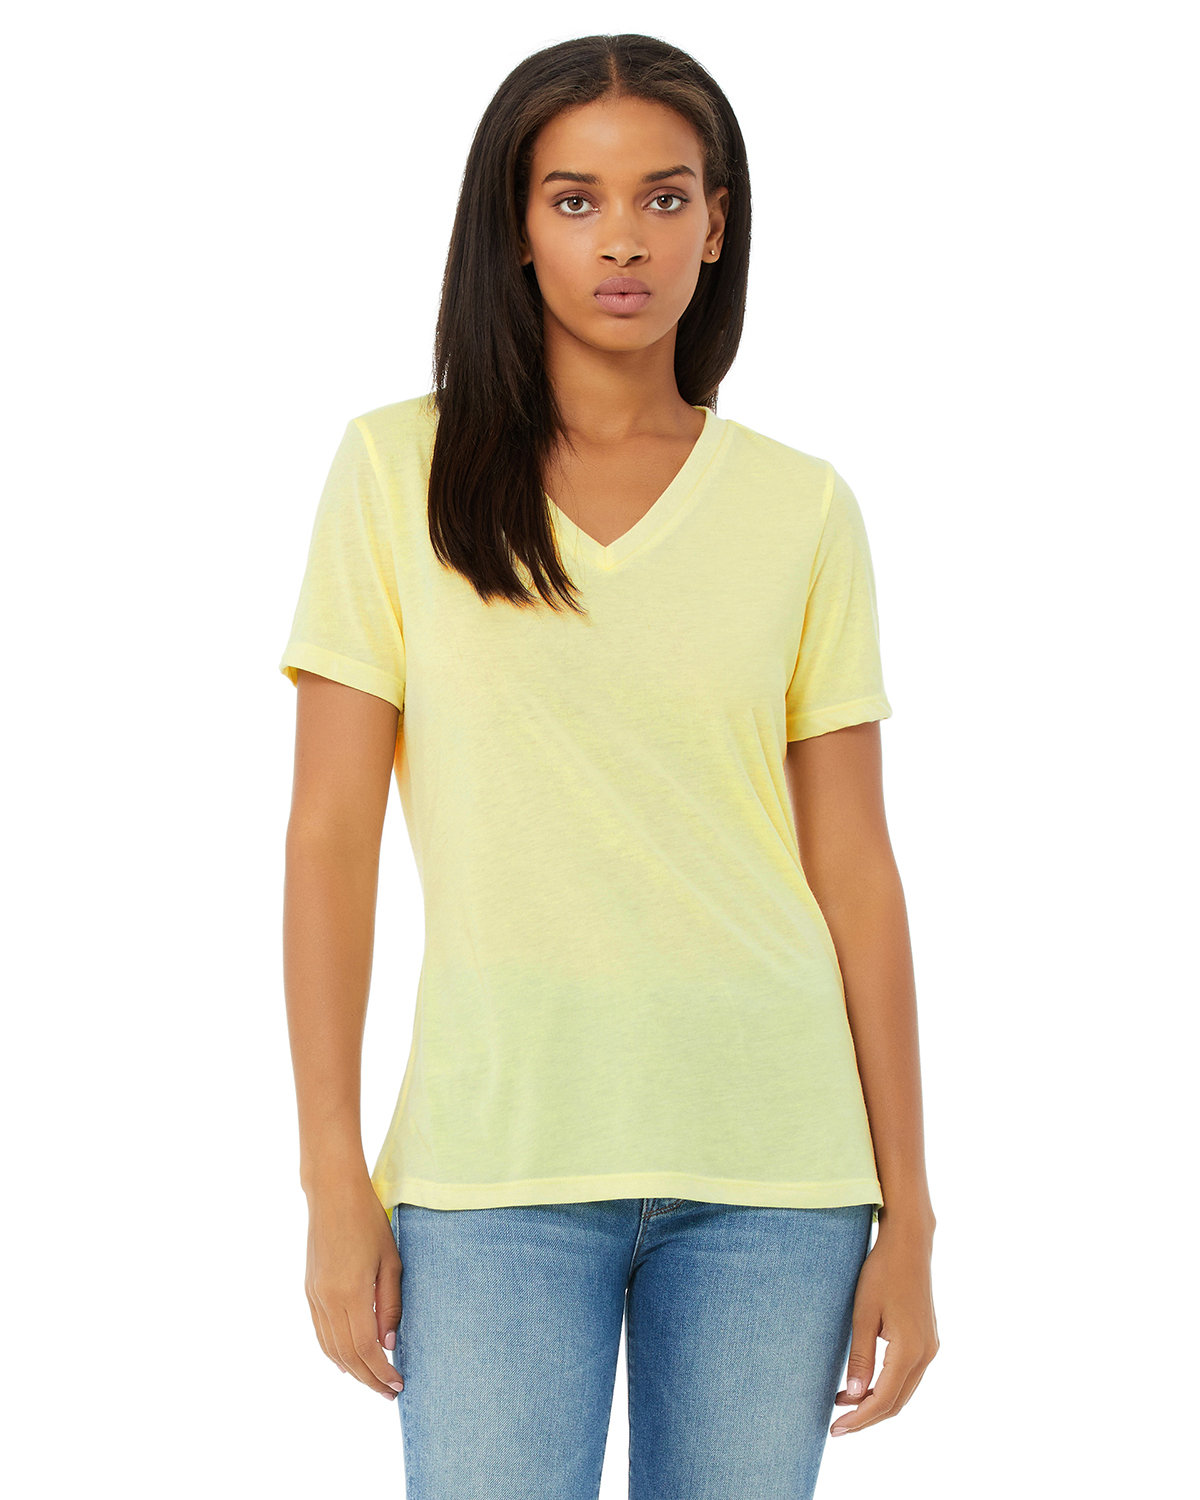 Bella + Canvas Ladies' Relaxed Jersey V-Neck T-Shirt PALE YLW TRBLND